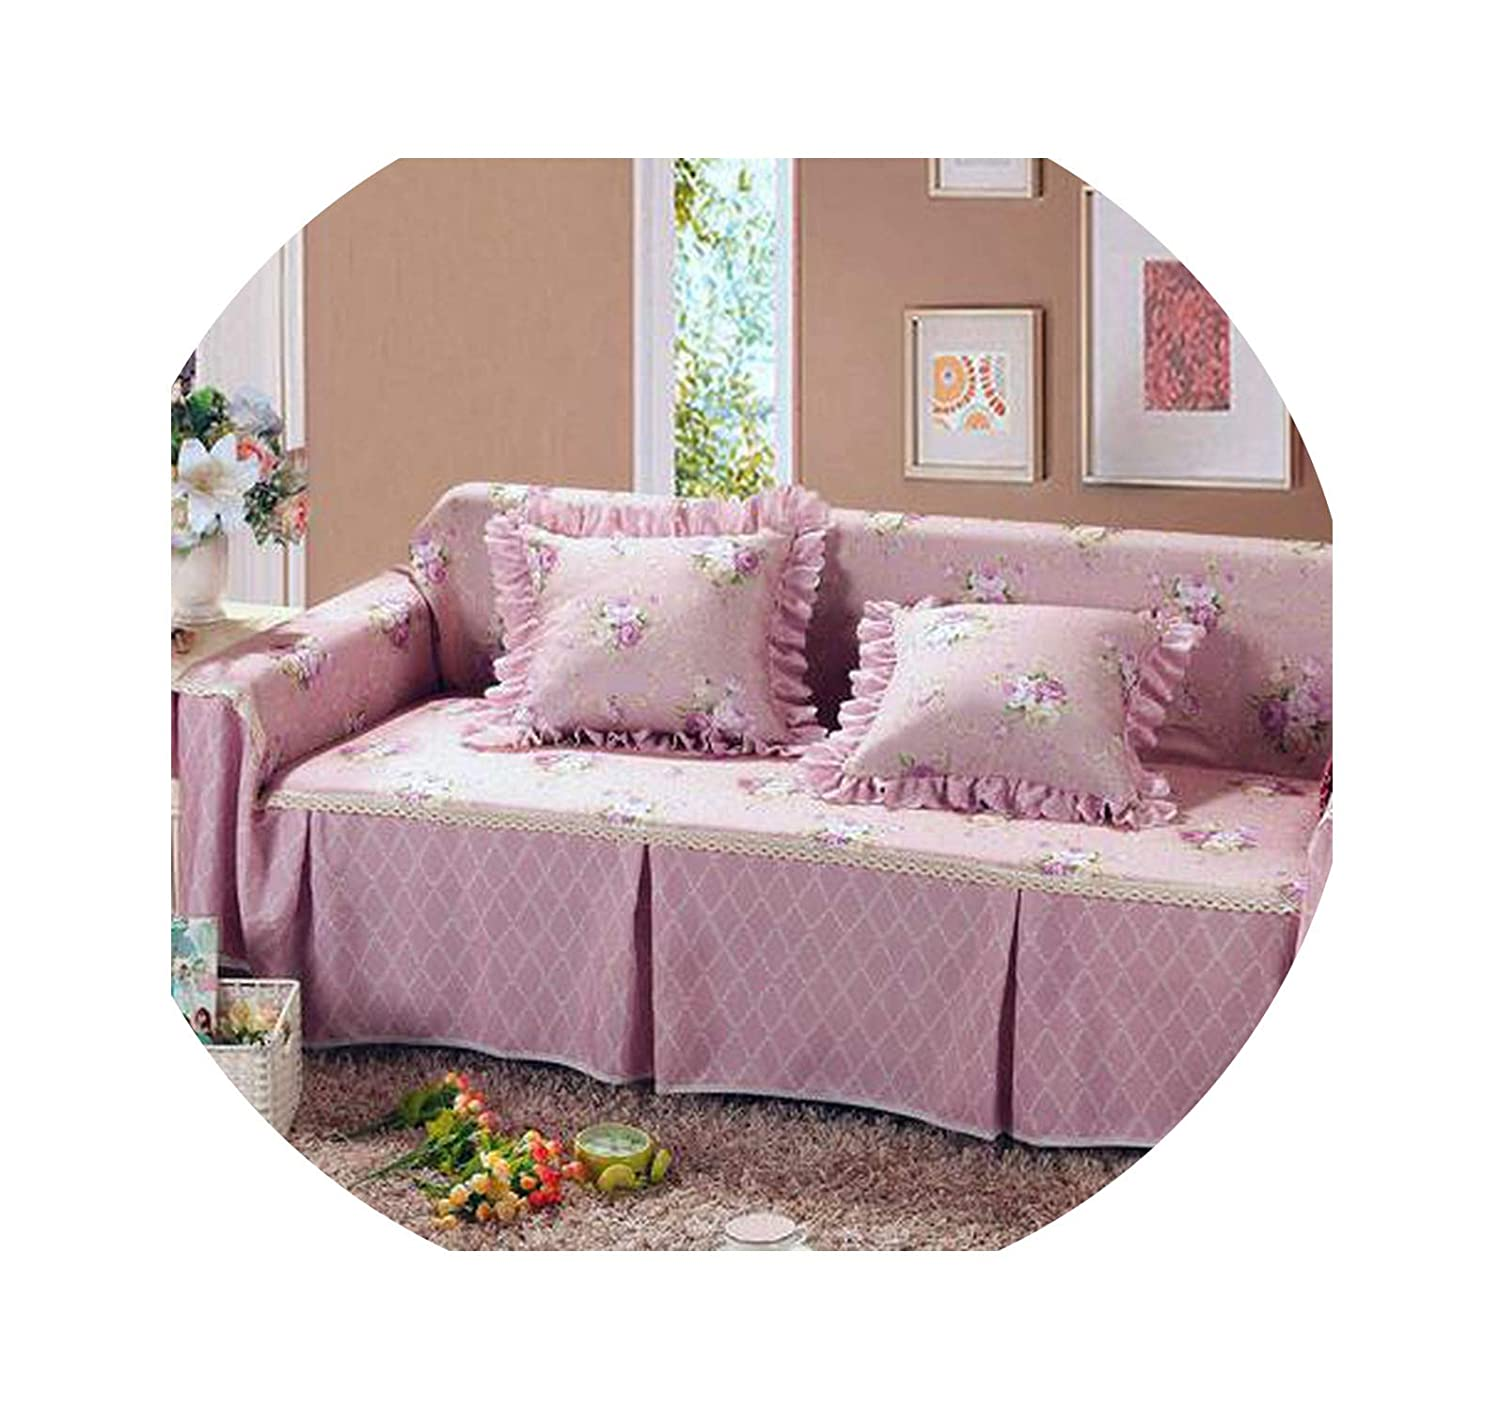 Love & Freedome Thicker Cover Sofa Towels for Couch Sofa Pastoral Slipcover capa de Sofa Covers Polyester Use Single/Double/Three/Four,Sofa Cover 2,90x90cm Tablecloth